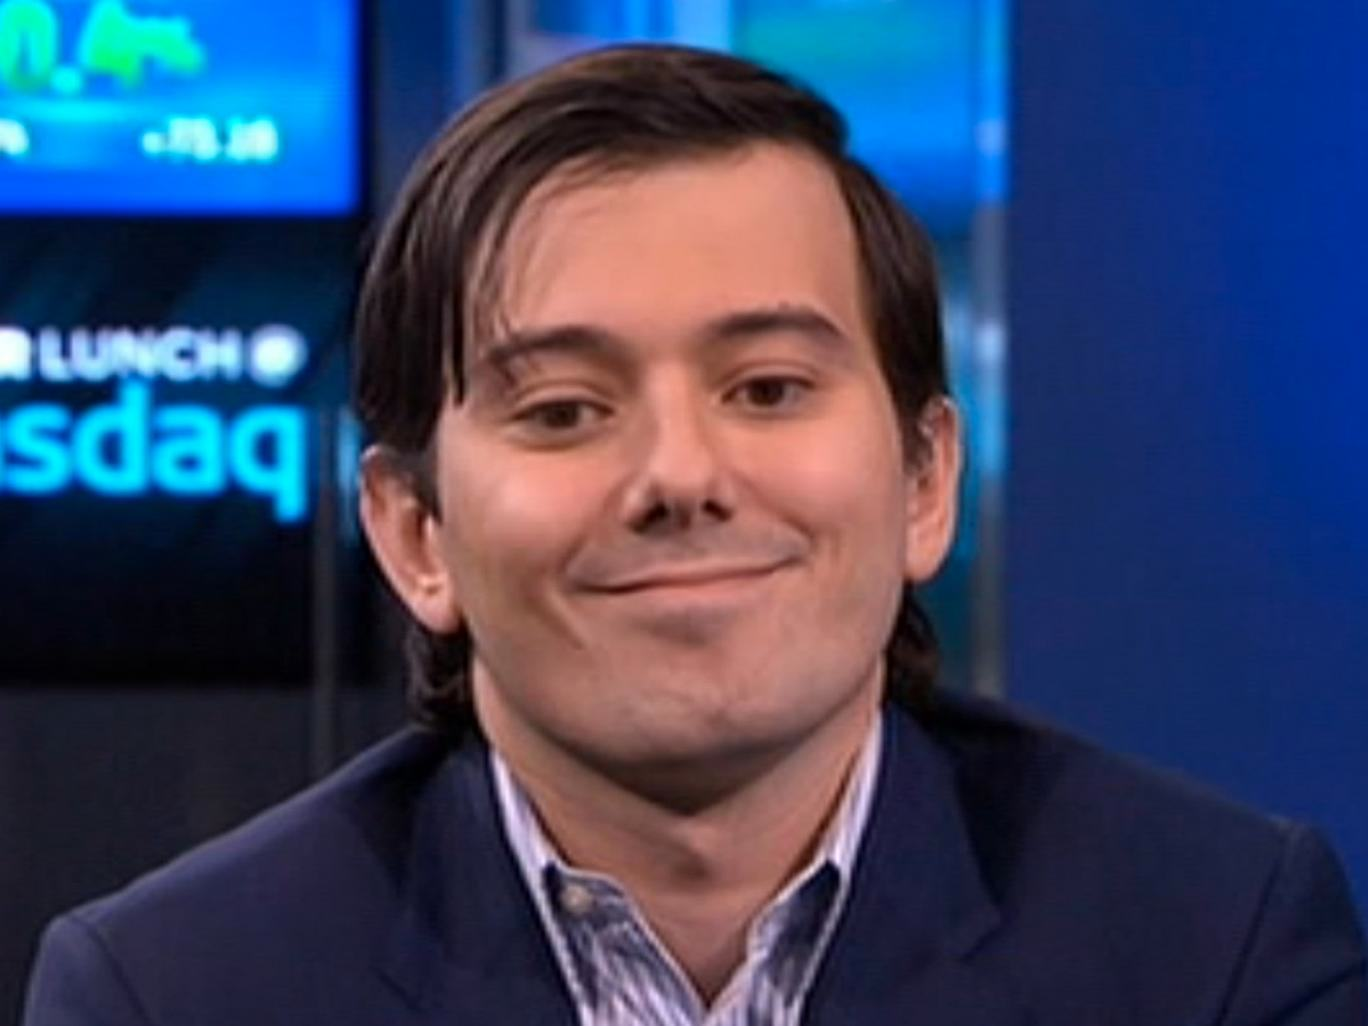 Shkreli 4 1 Most Hated Man On The Internet Probably Wont Be Driving Up Drug Prices Anymore